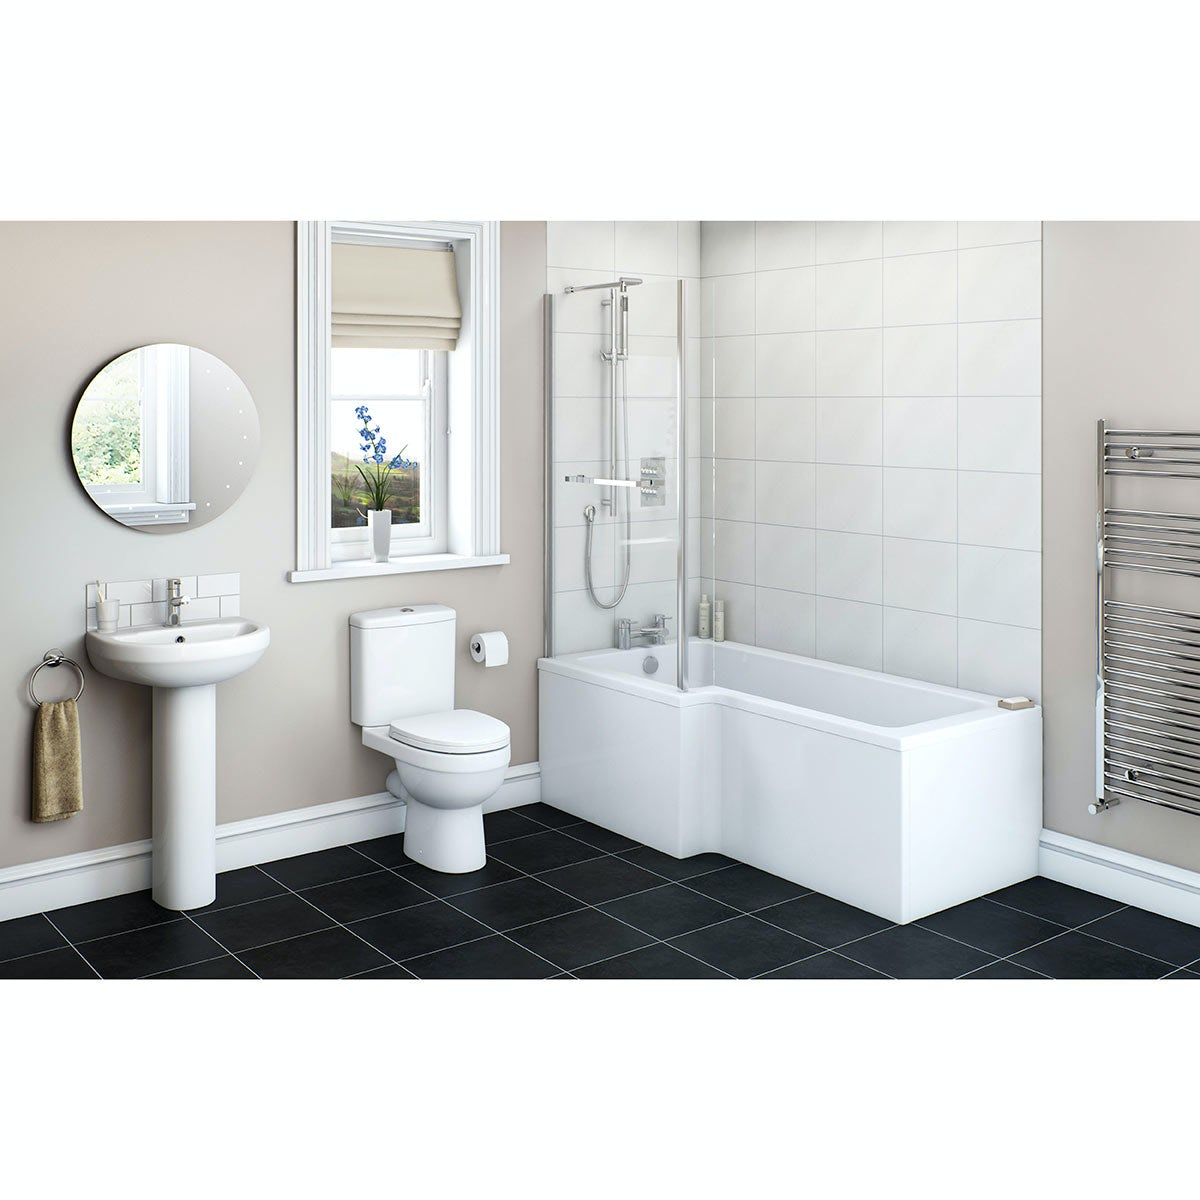 Orchard Eden bathroom suite with left handed L shaped shower bath 1700 x 850